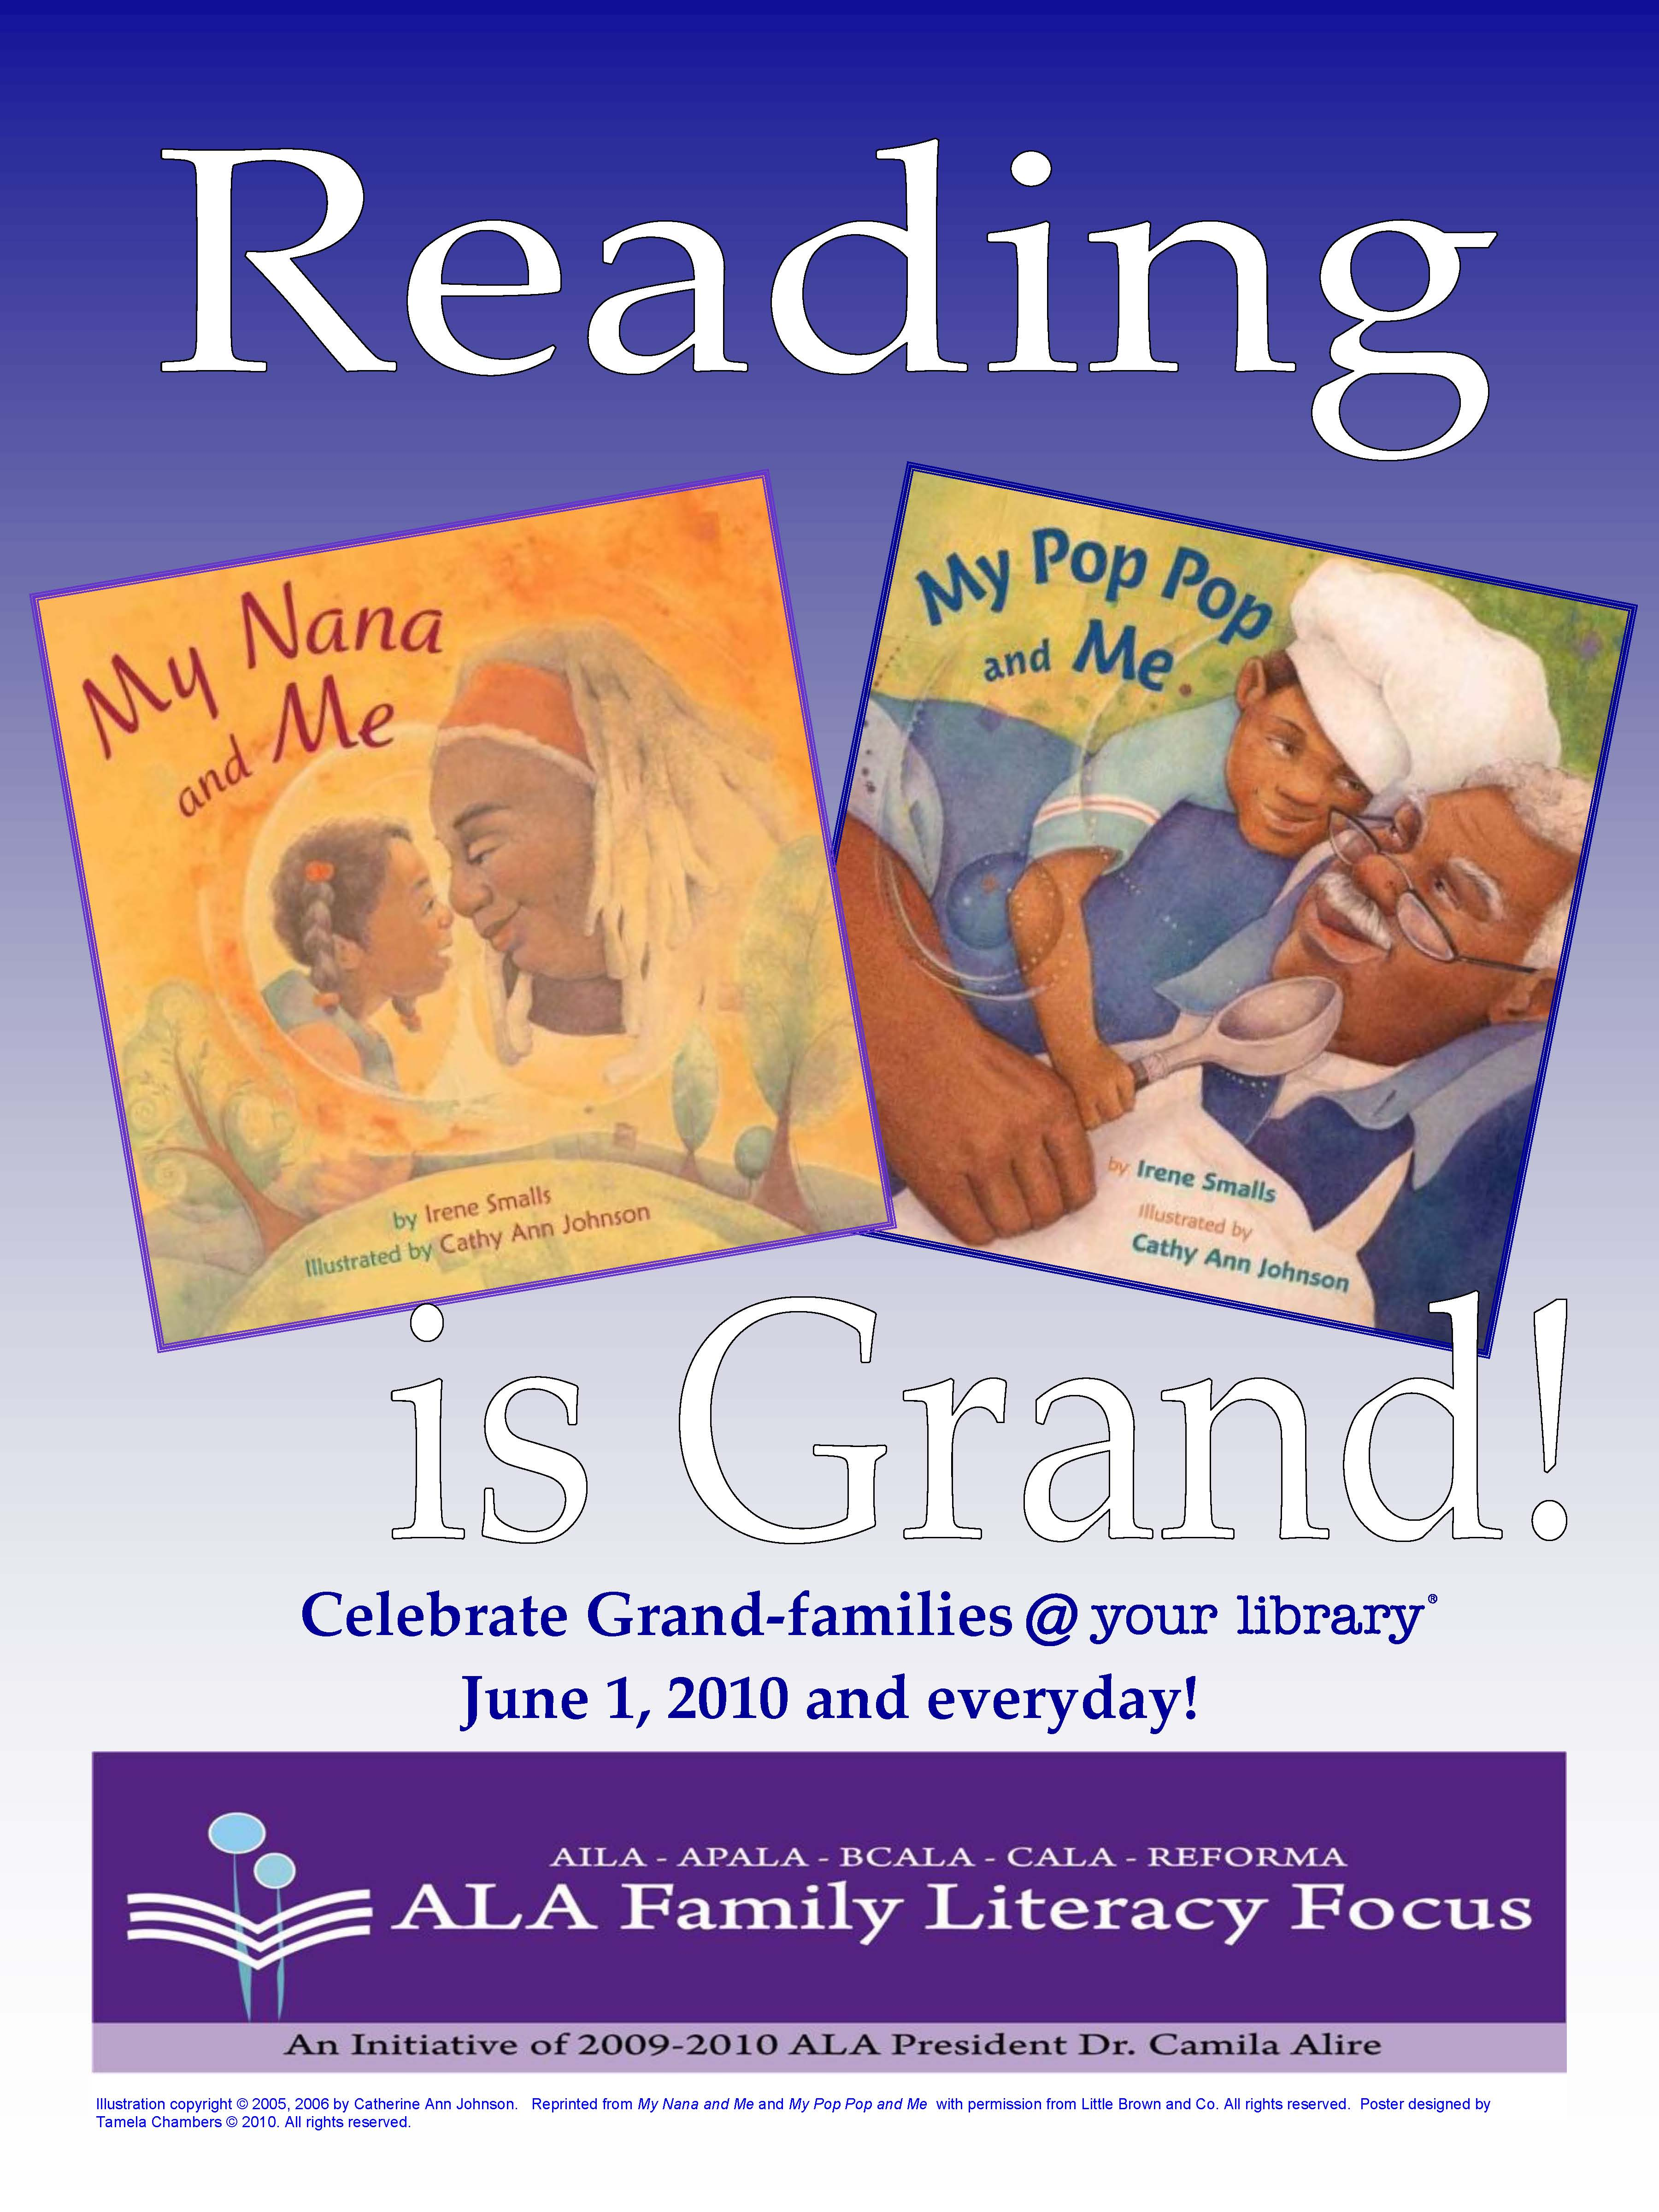 Reading is Grand!